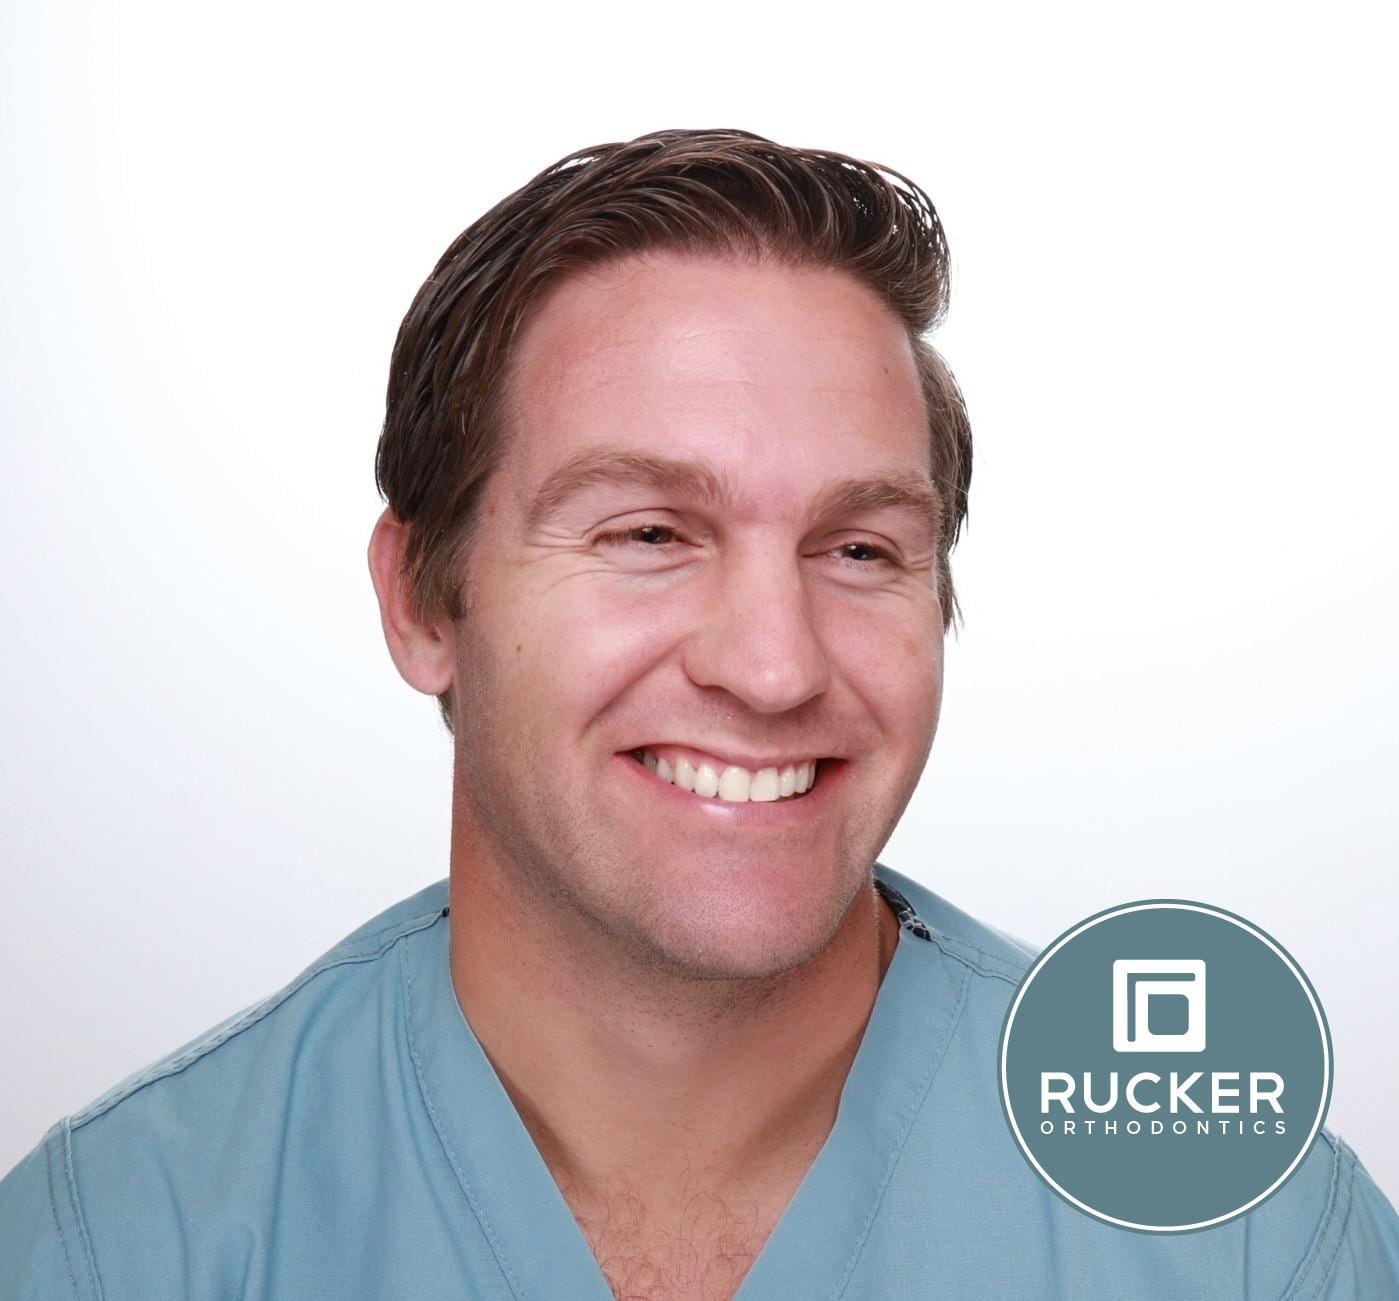 rucker orthodontics, dr rucker, straight teeth, orthodontist in temecula, dentist, damon braces, braces, clear braces, invisalign, smile, teeth whitening, smile direct club, retainers